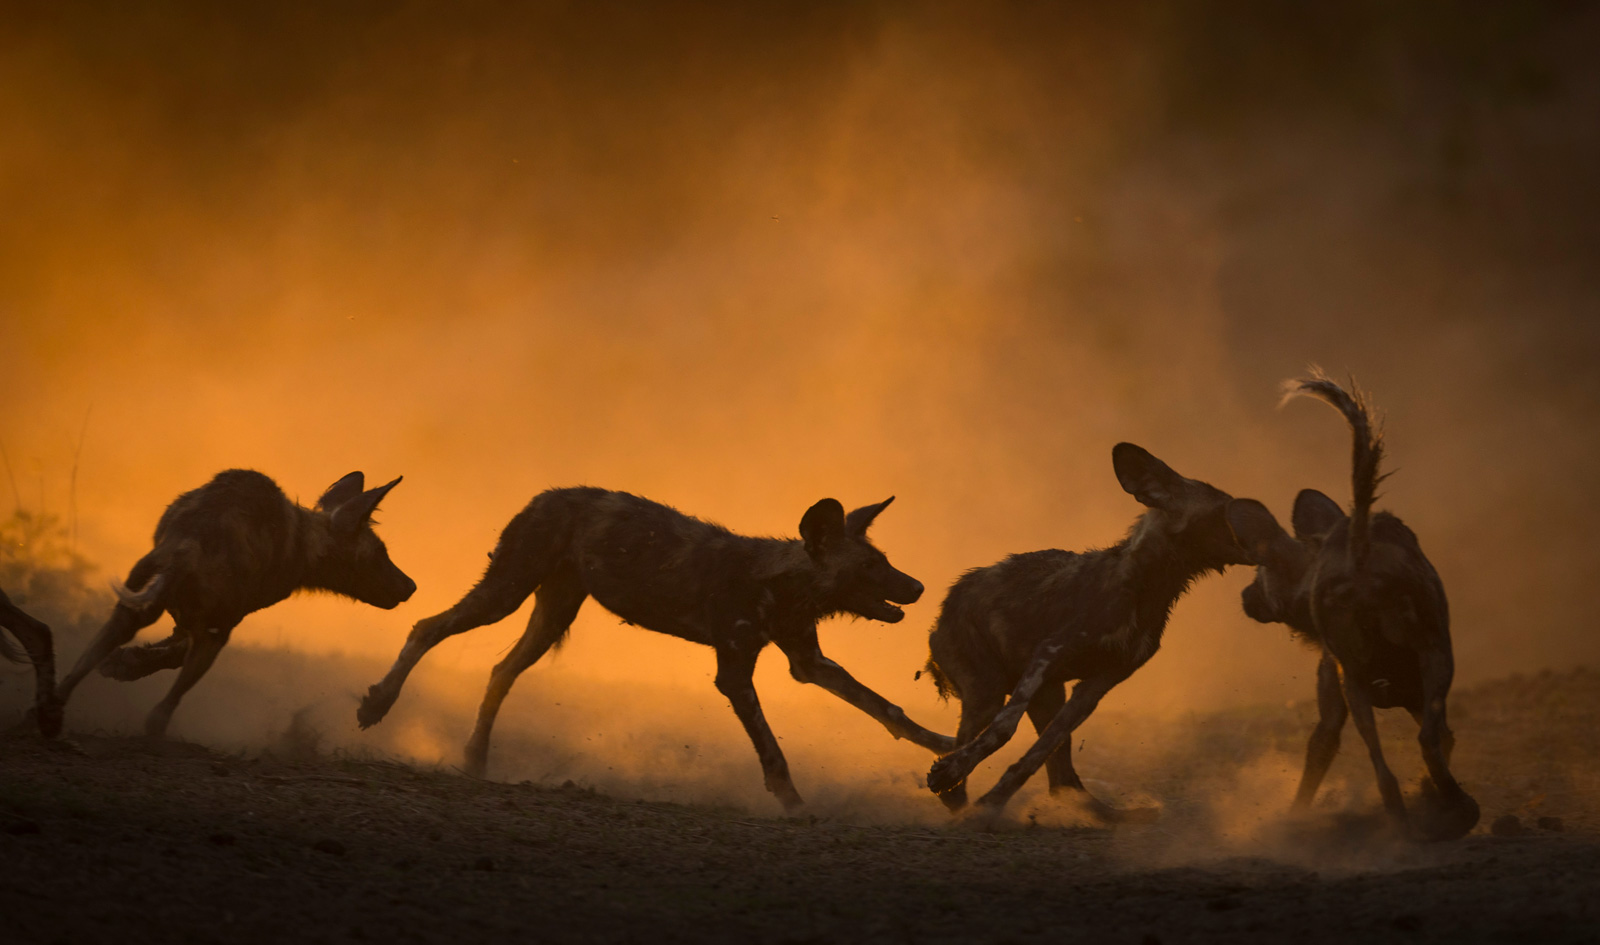 """Playtime in the dust"" in Mana Pools National Park, Zimbabwe ©Jens Cullann"